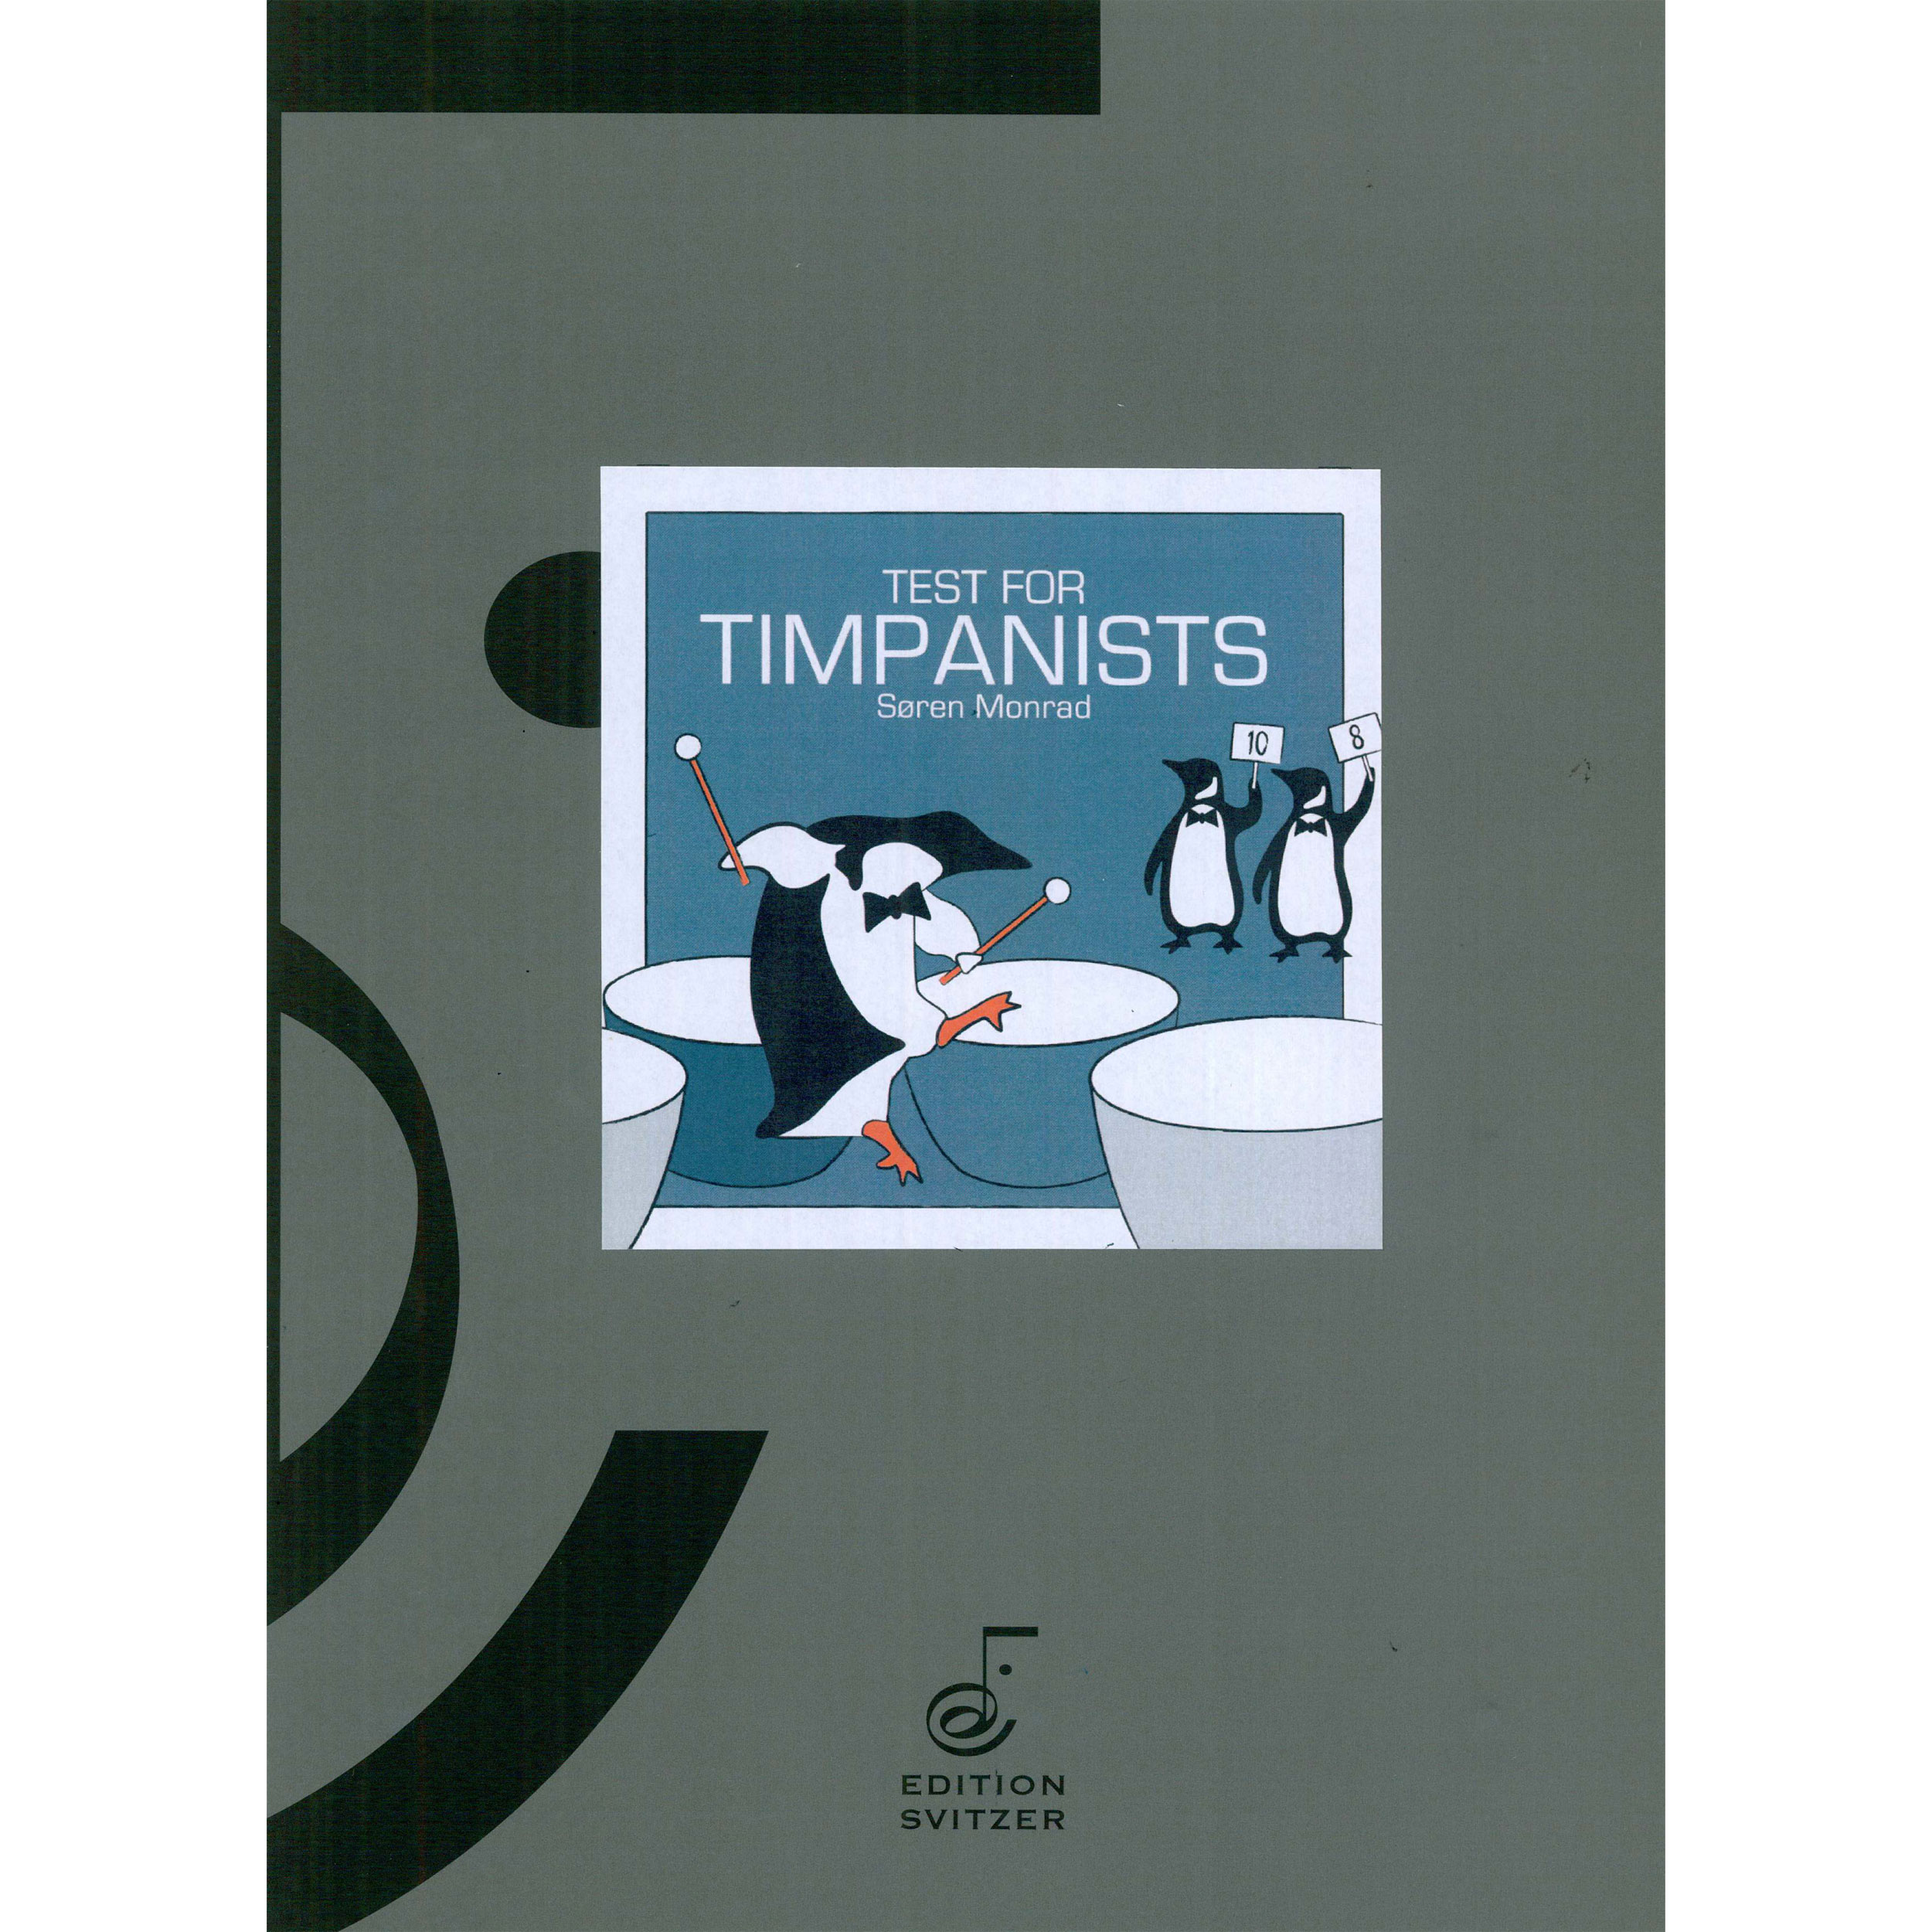 Test for Timpanists by Soren Monrad